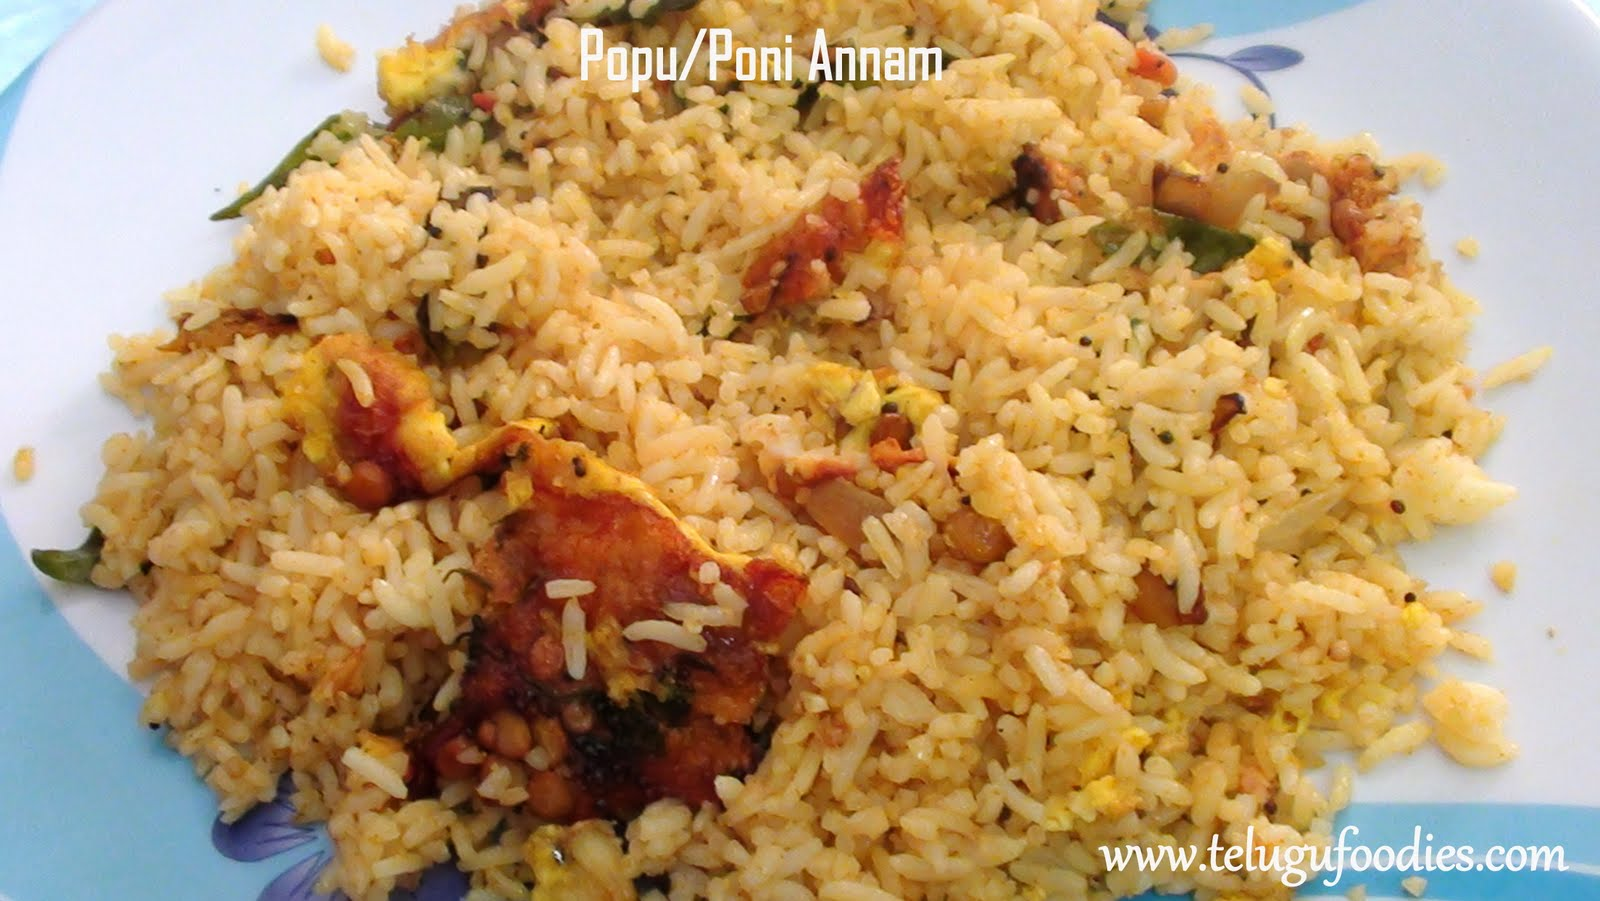 Poni annam telugu fried rice homemade telugu recipes ccuart Choice Image